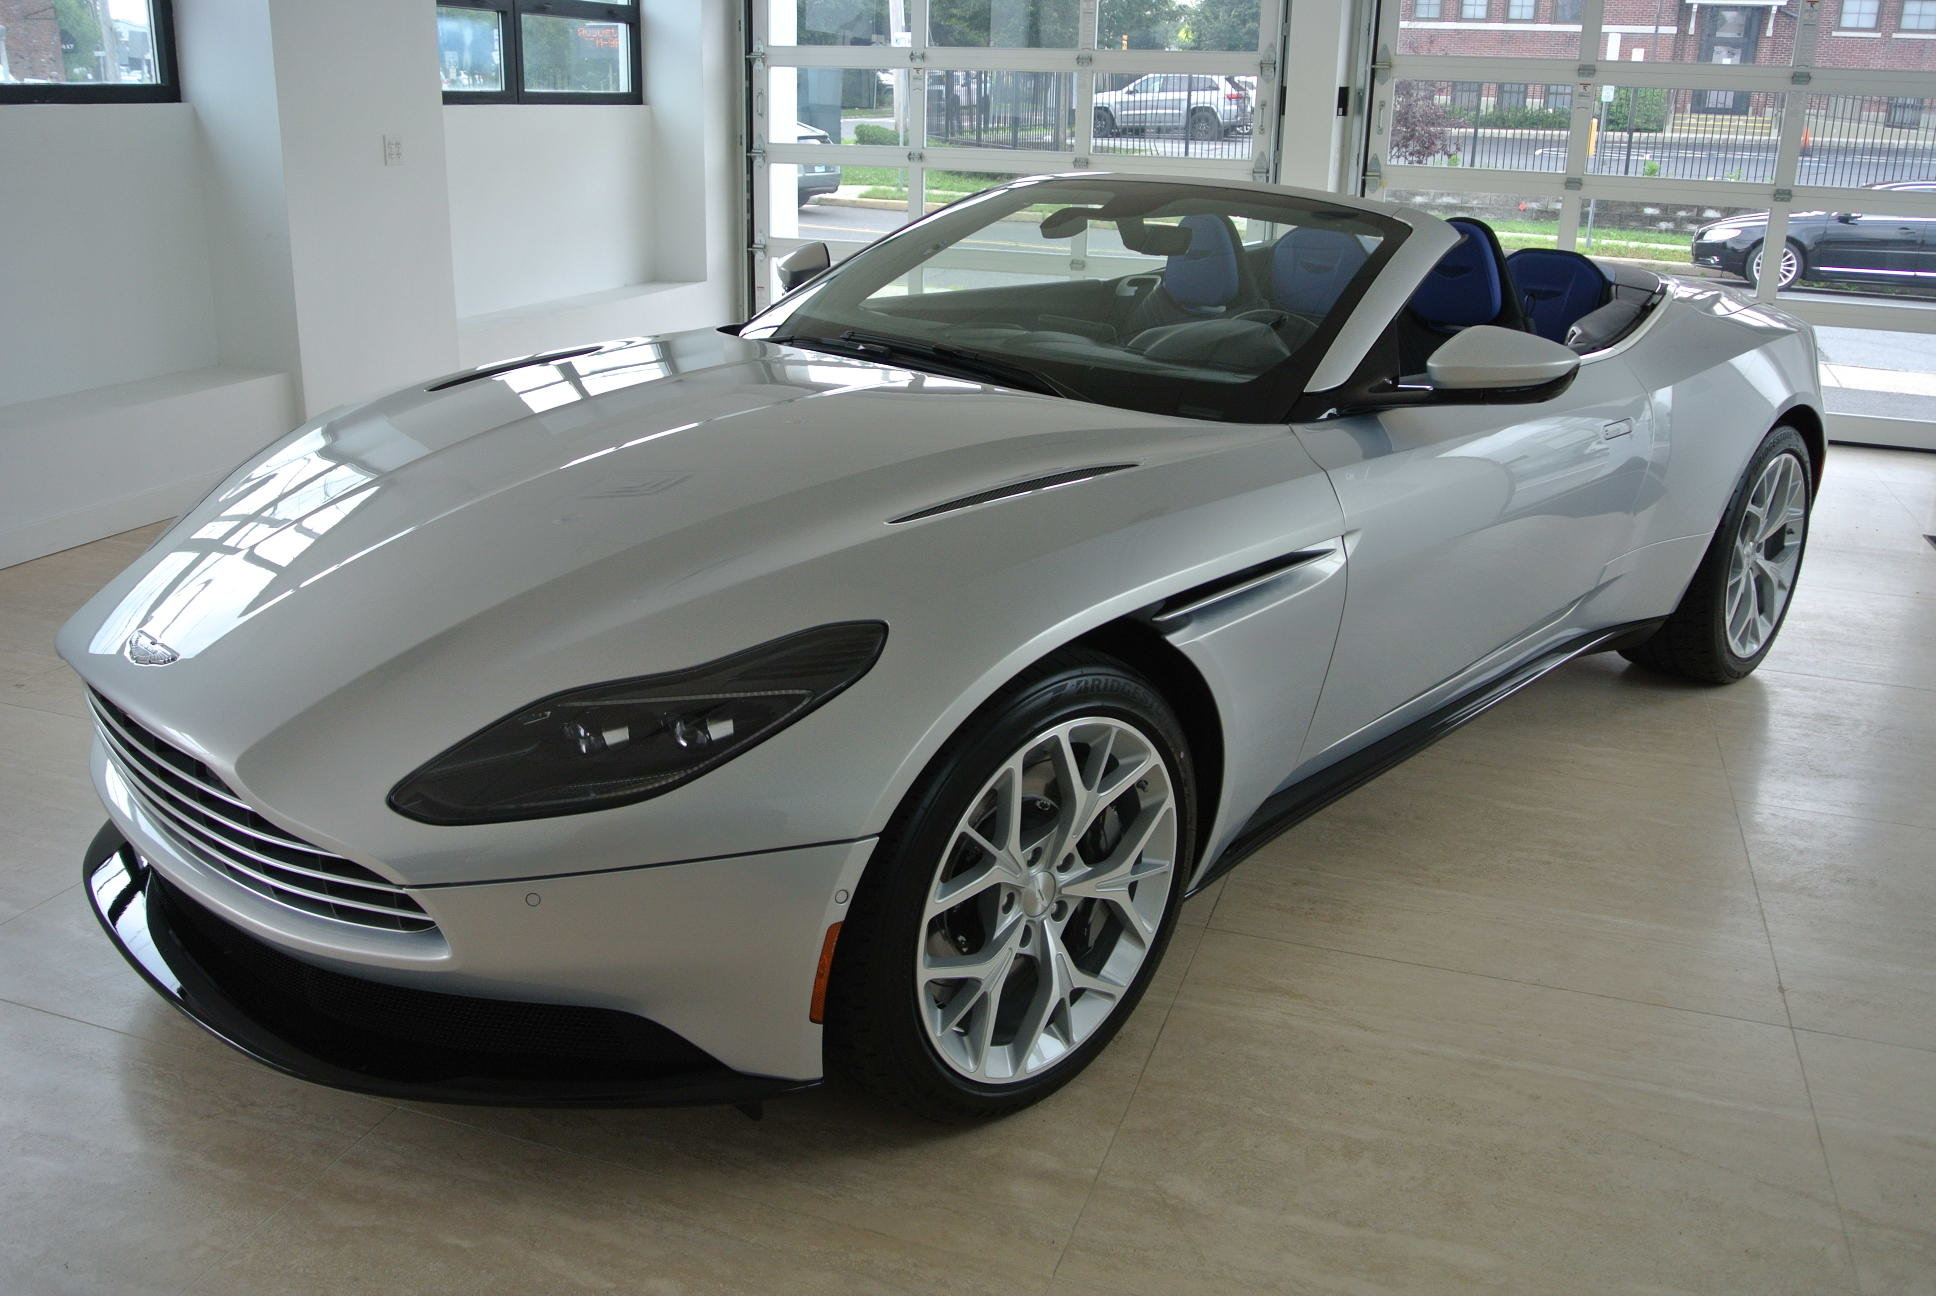 Special offer on 2019 Aston DB11 2019 Aston Martin DB11 Volante